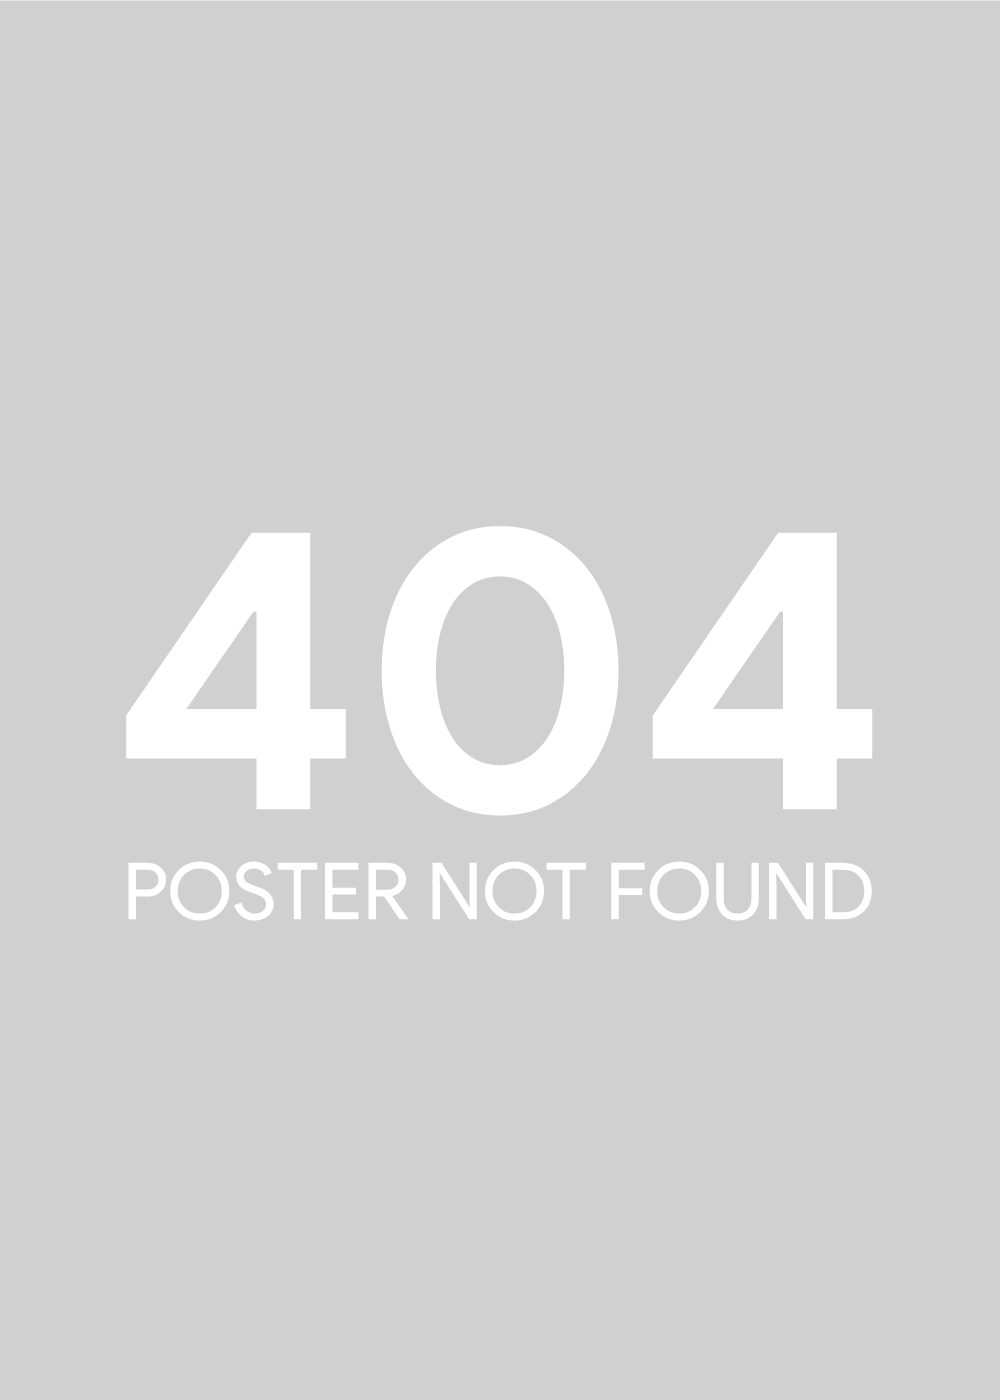 404 poster not found plakat